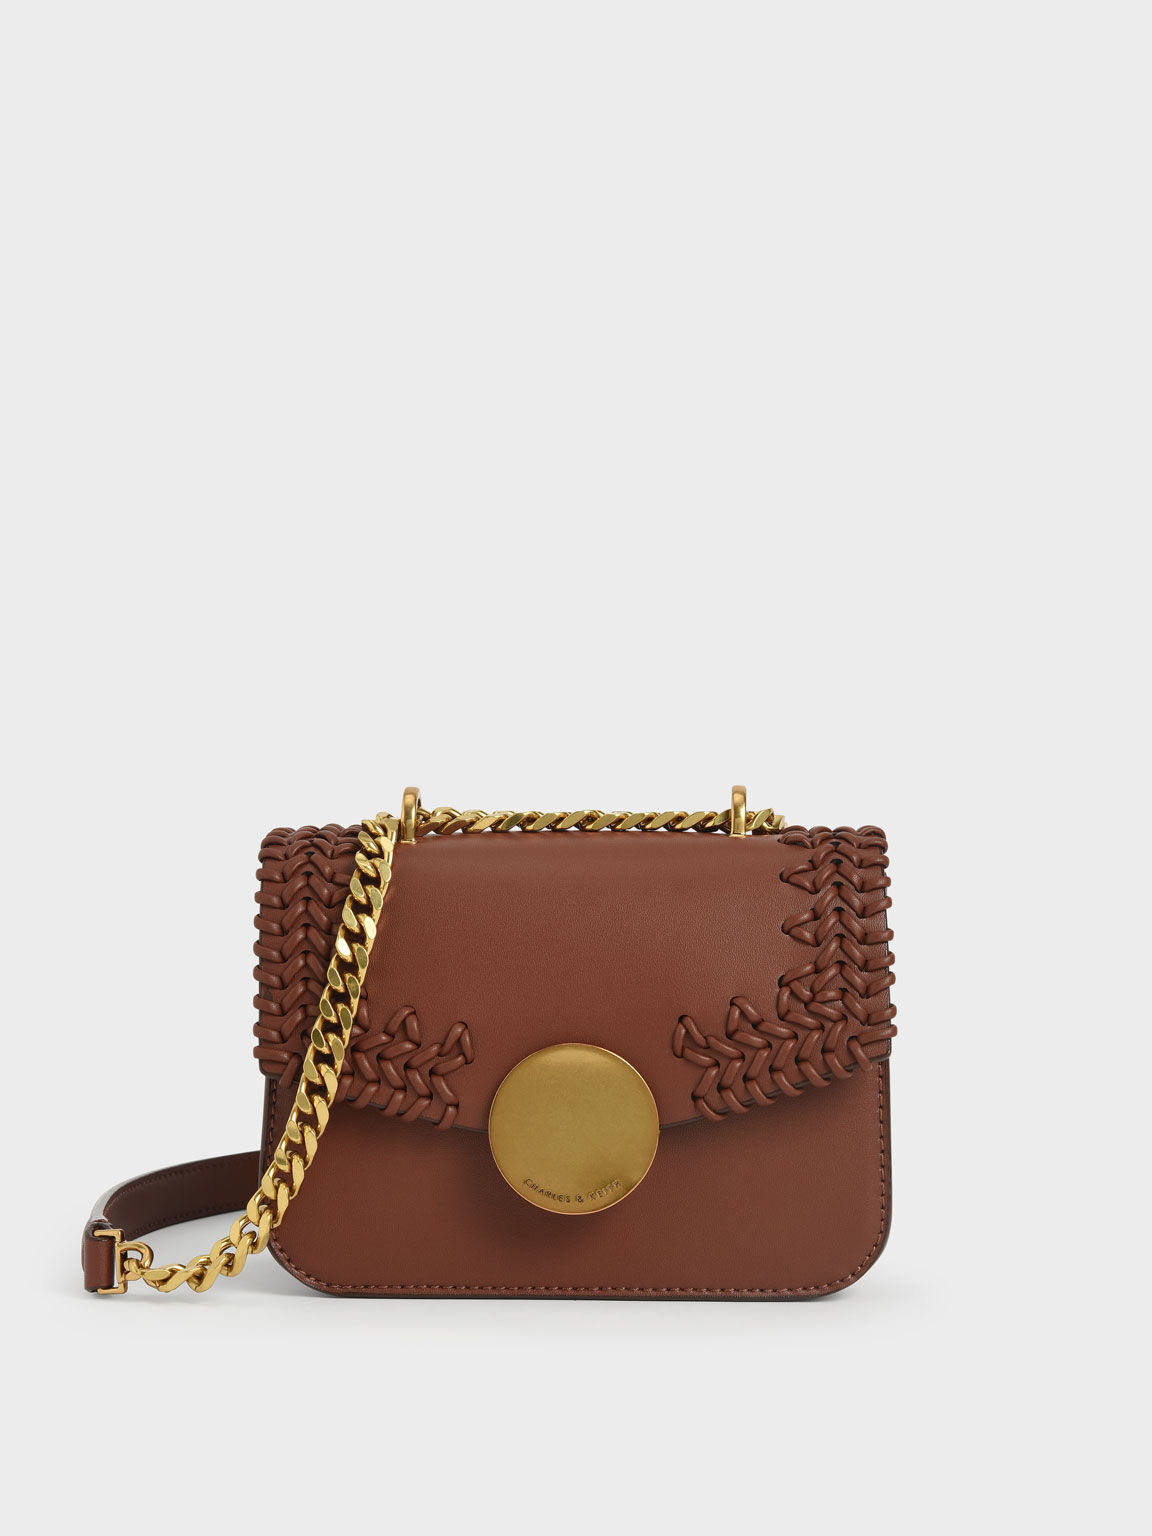 Woven Double Chain Handle Bag, Chocolate, hi-res